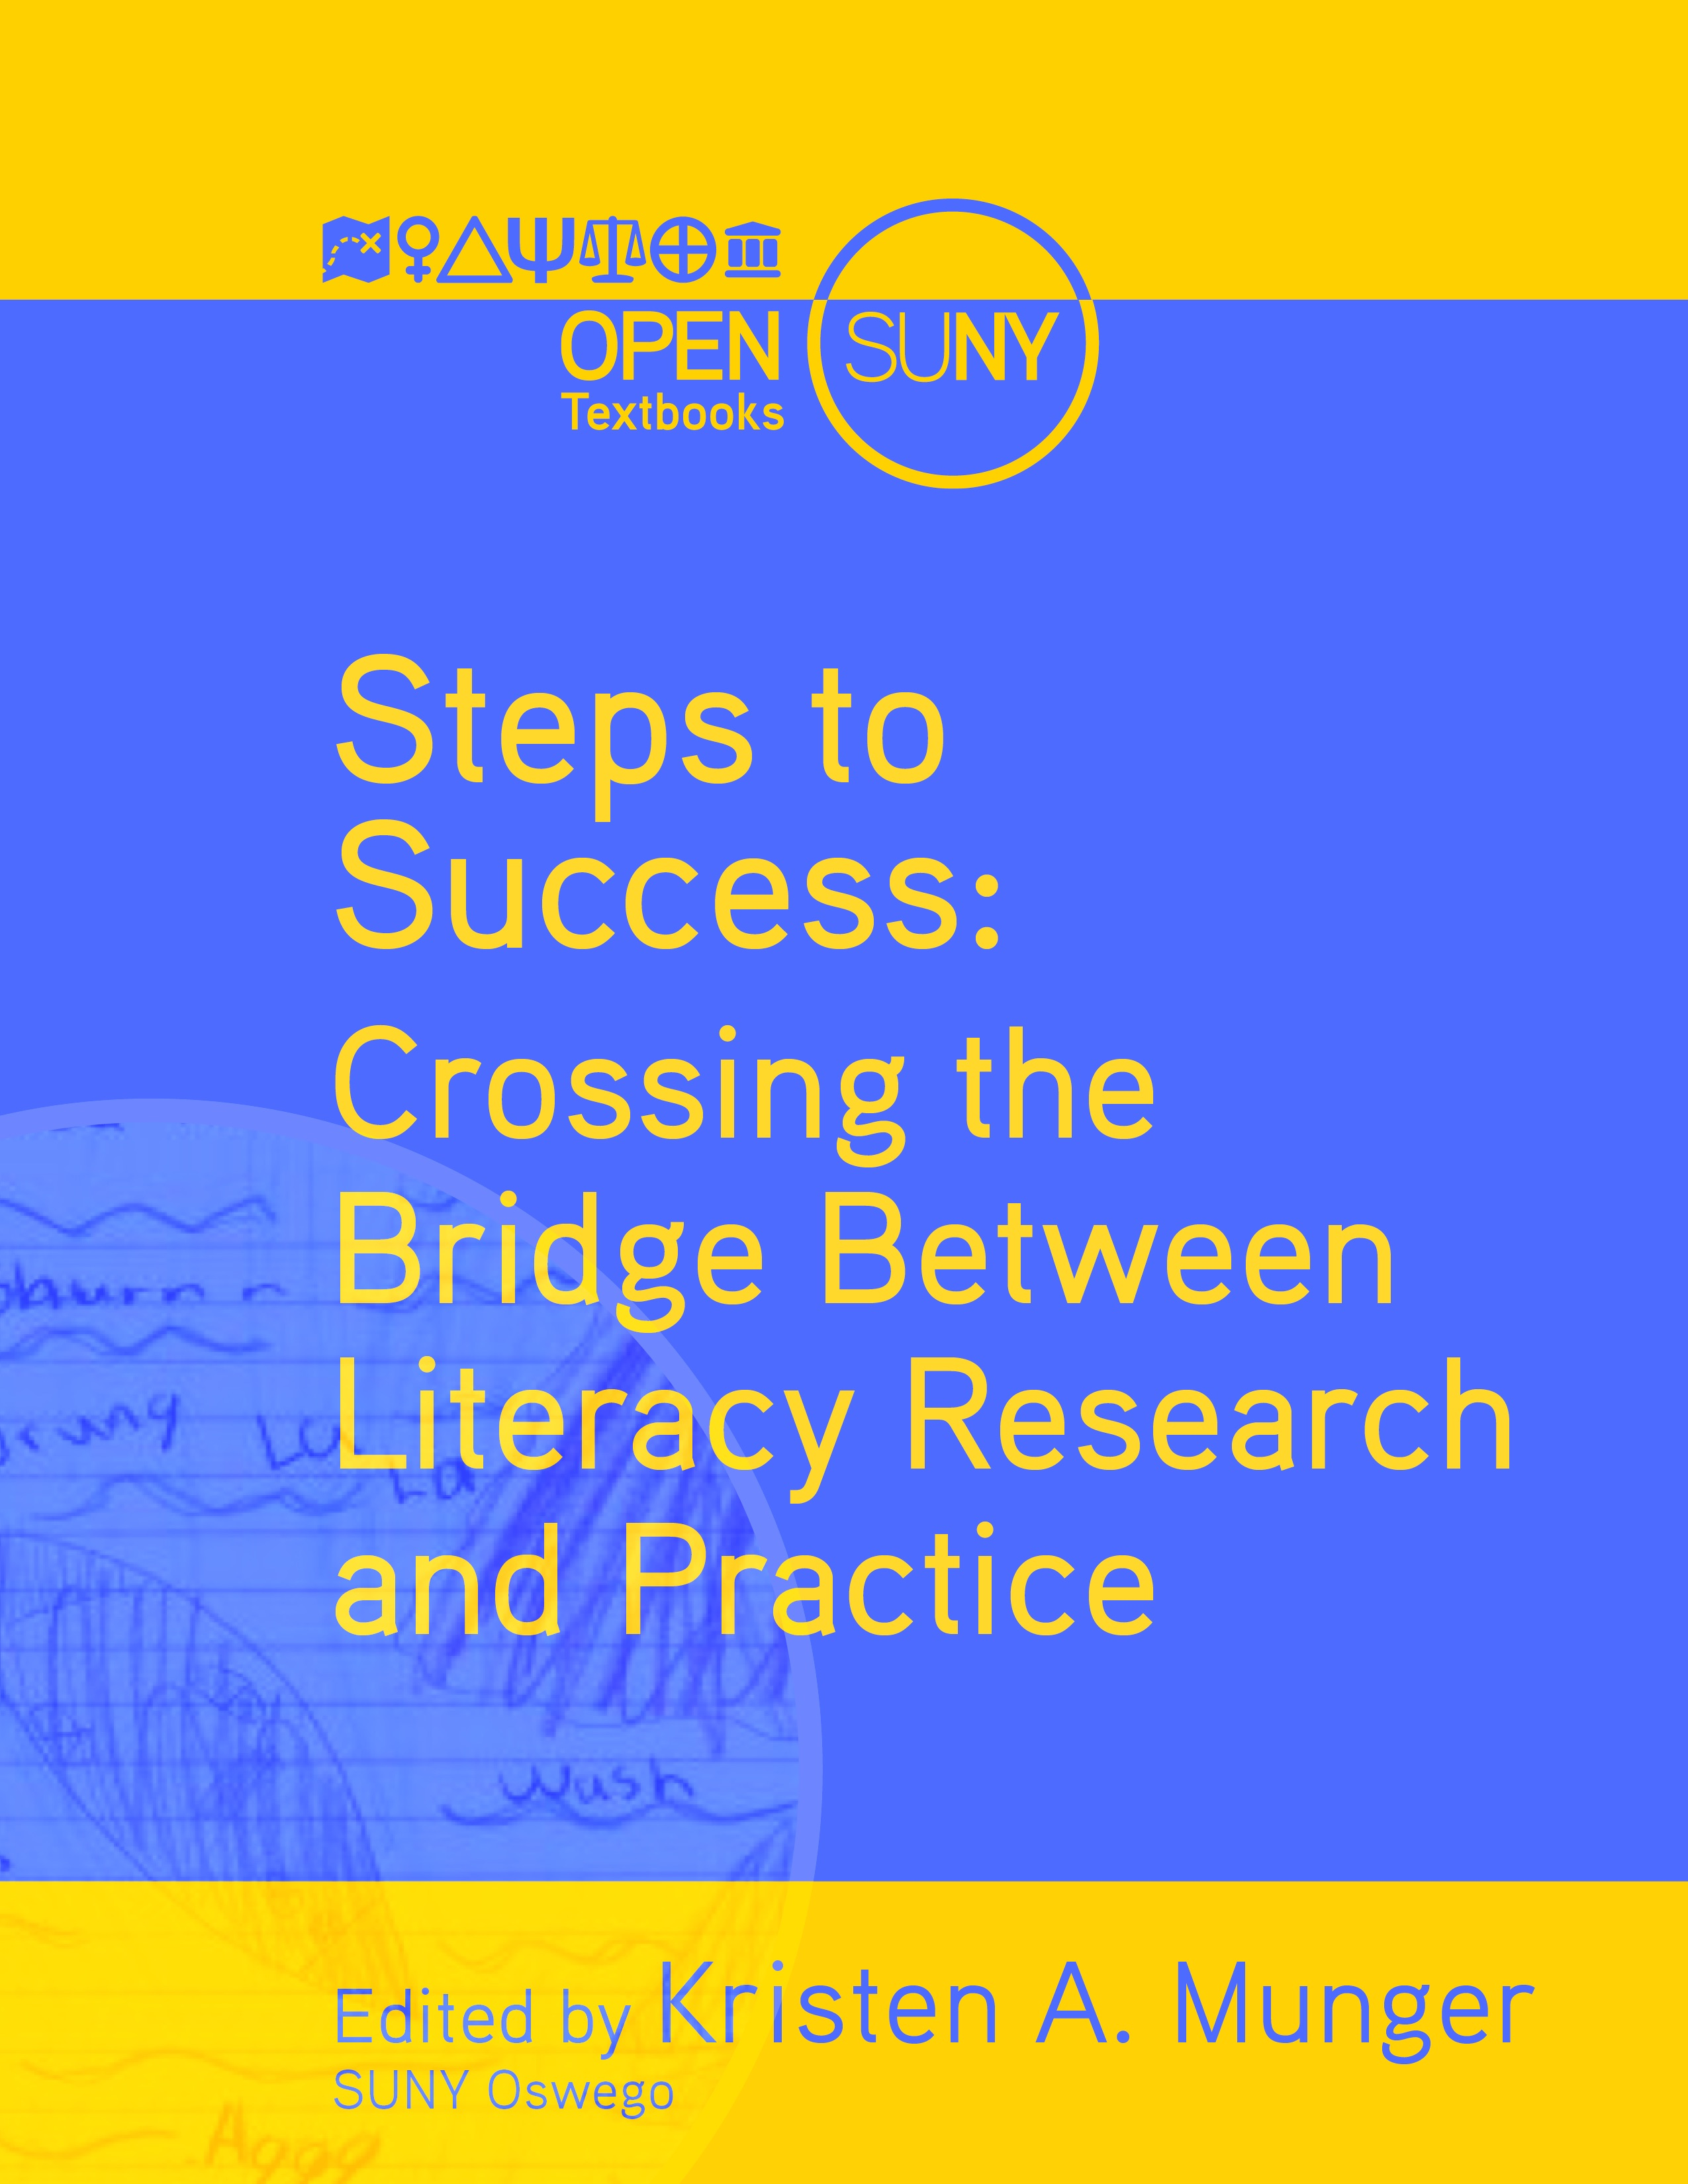 Cover image for Steps to Success: Crossing the Bridge Between Literacy Research and Practice